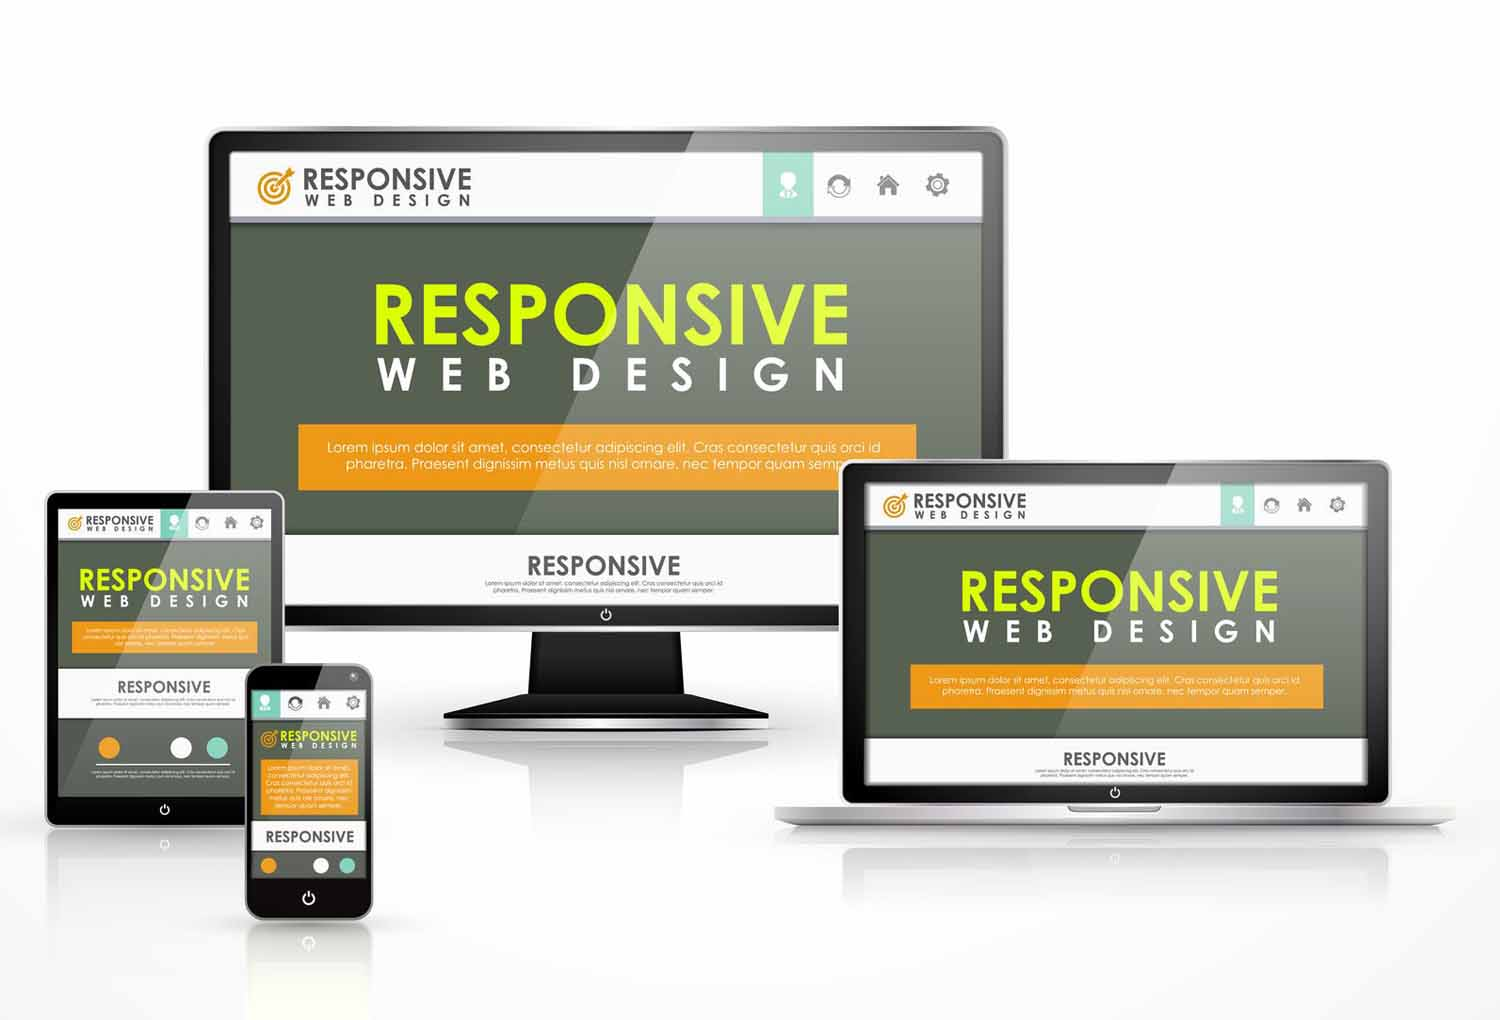 8 Benefits of Responsive Website Design